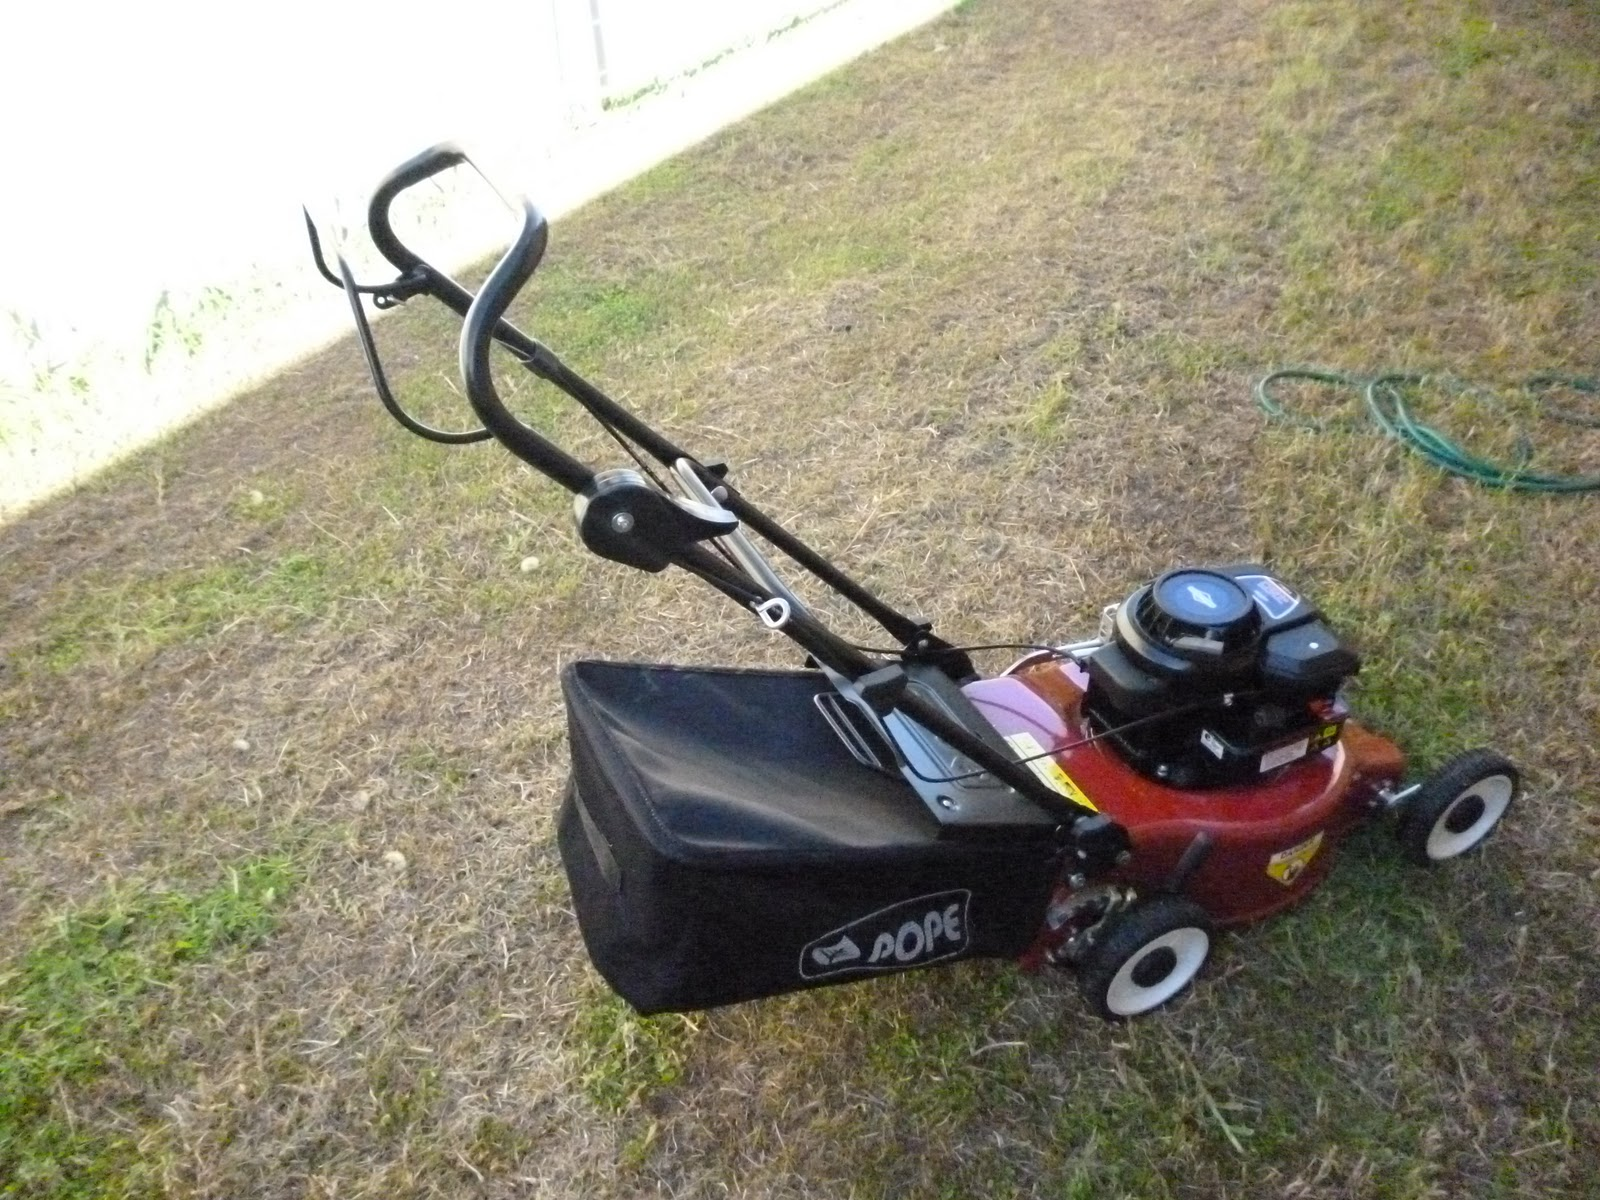 Briggs And Stratton Mower : Technology old and new pope pm lawn mower